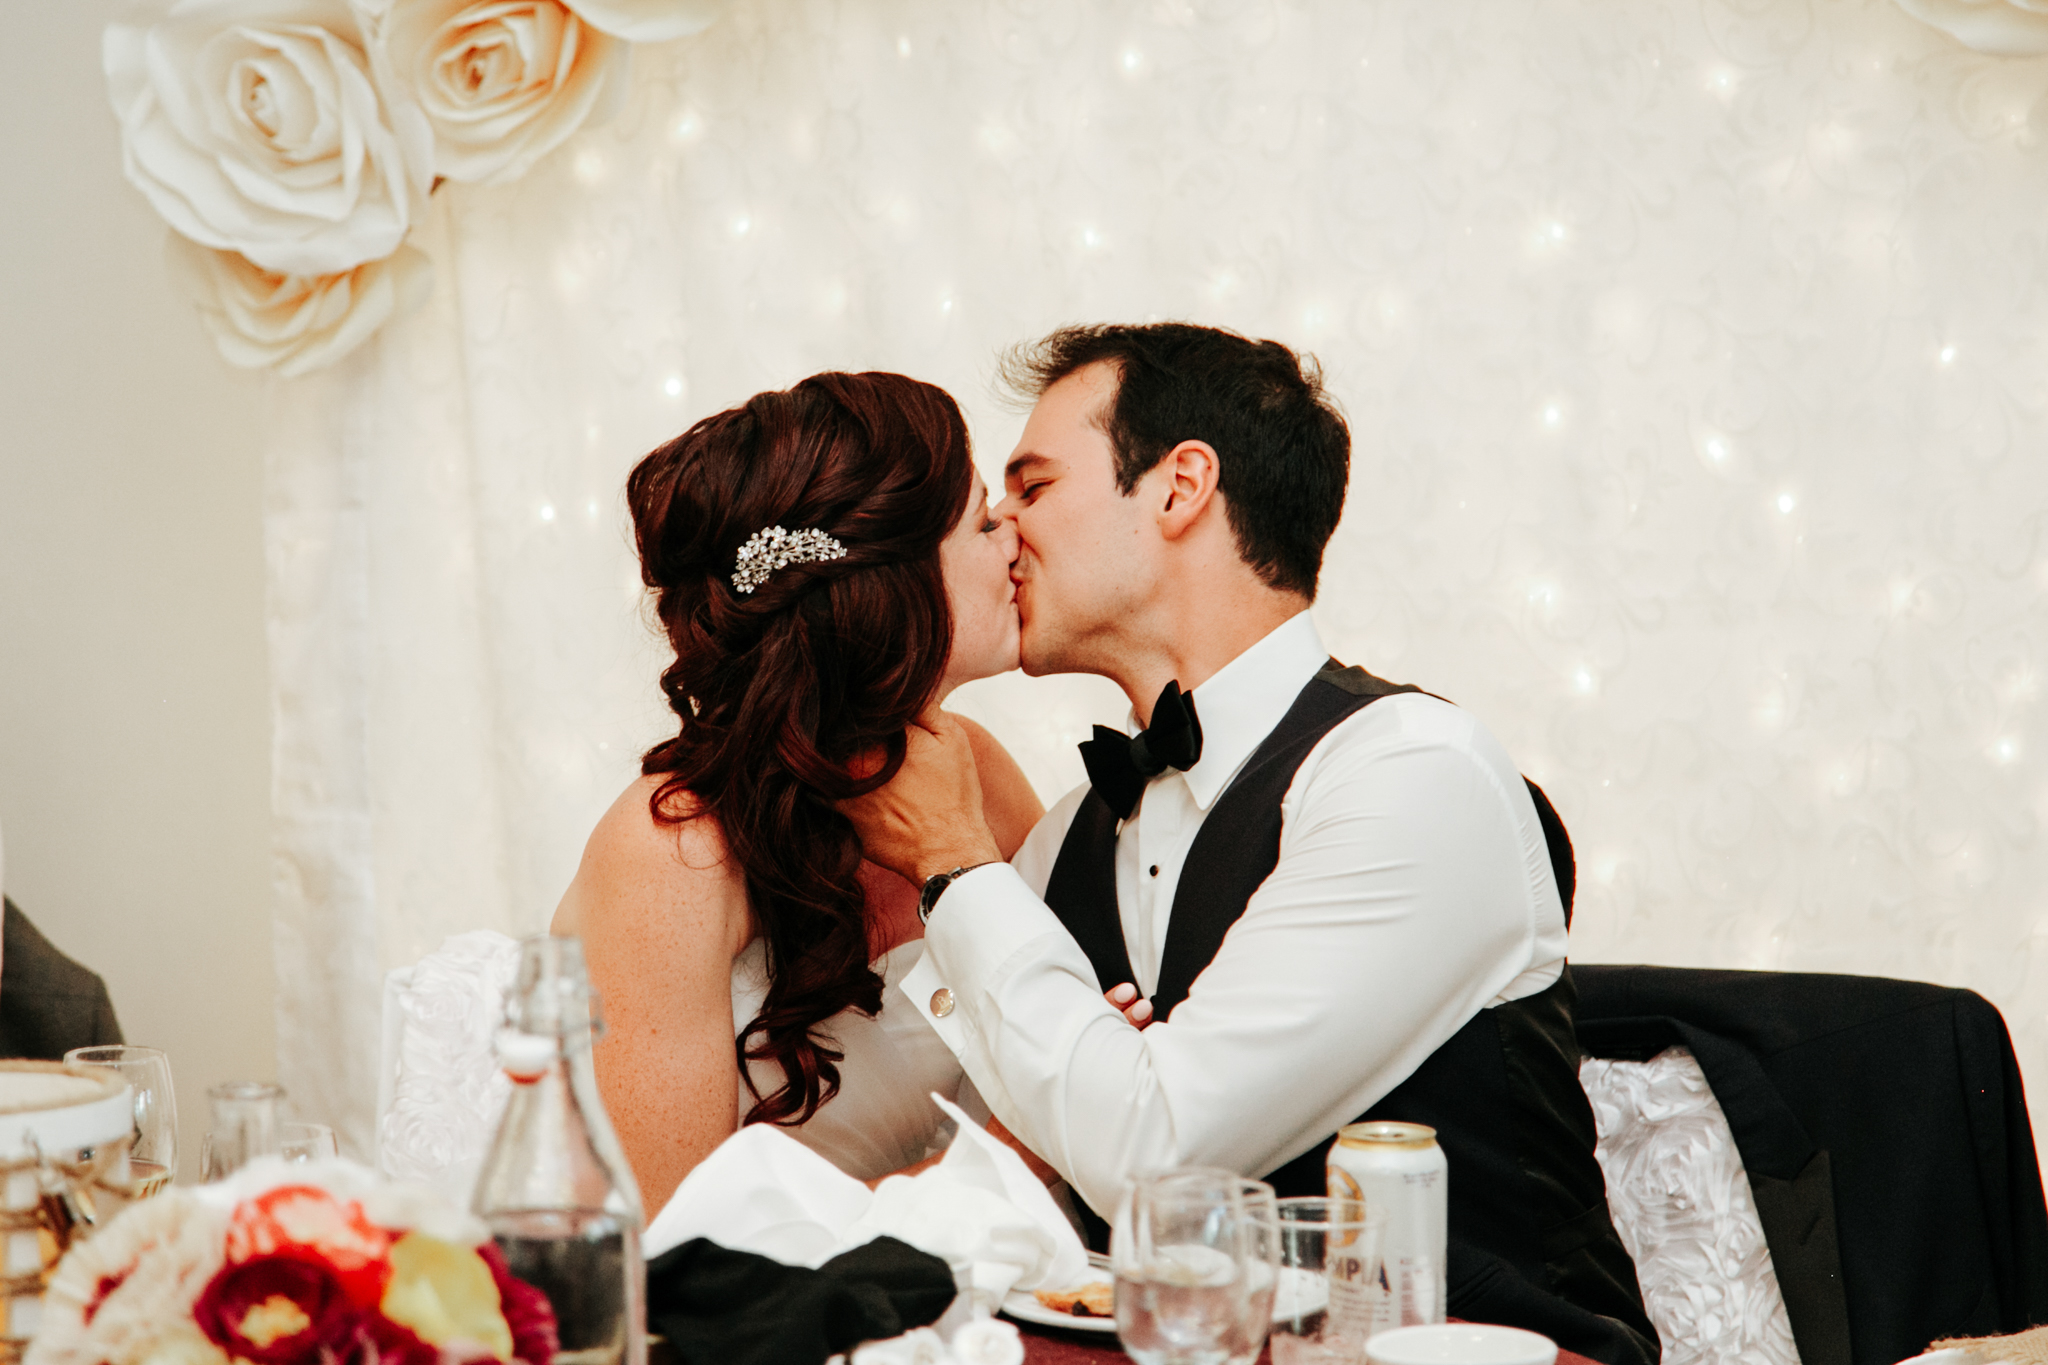 waterton-wedding-photography-love-and-be-loved-photographer-bayshore-inn-reception-image-photo-picture-27.jpg